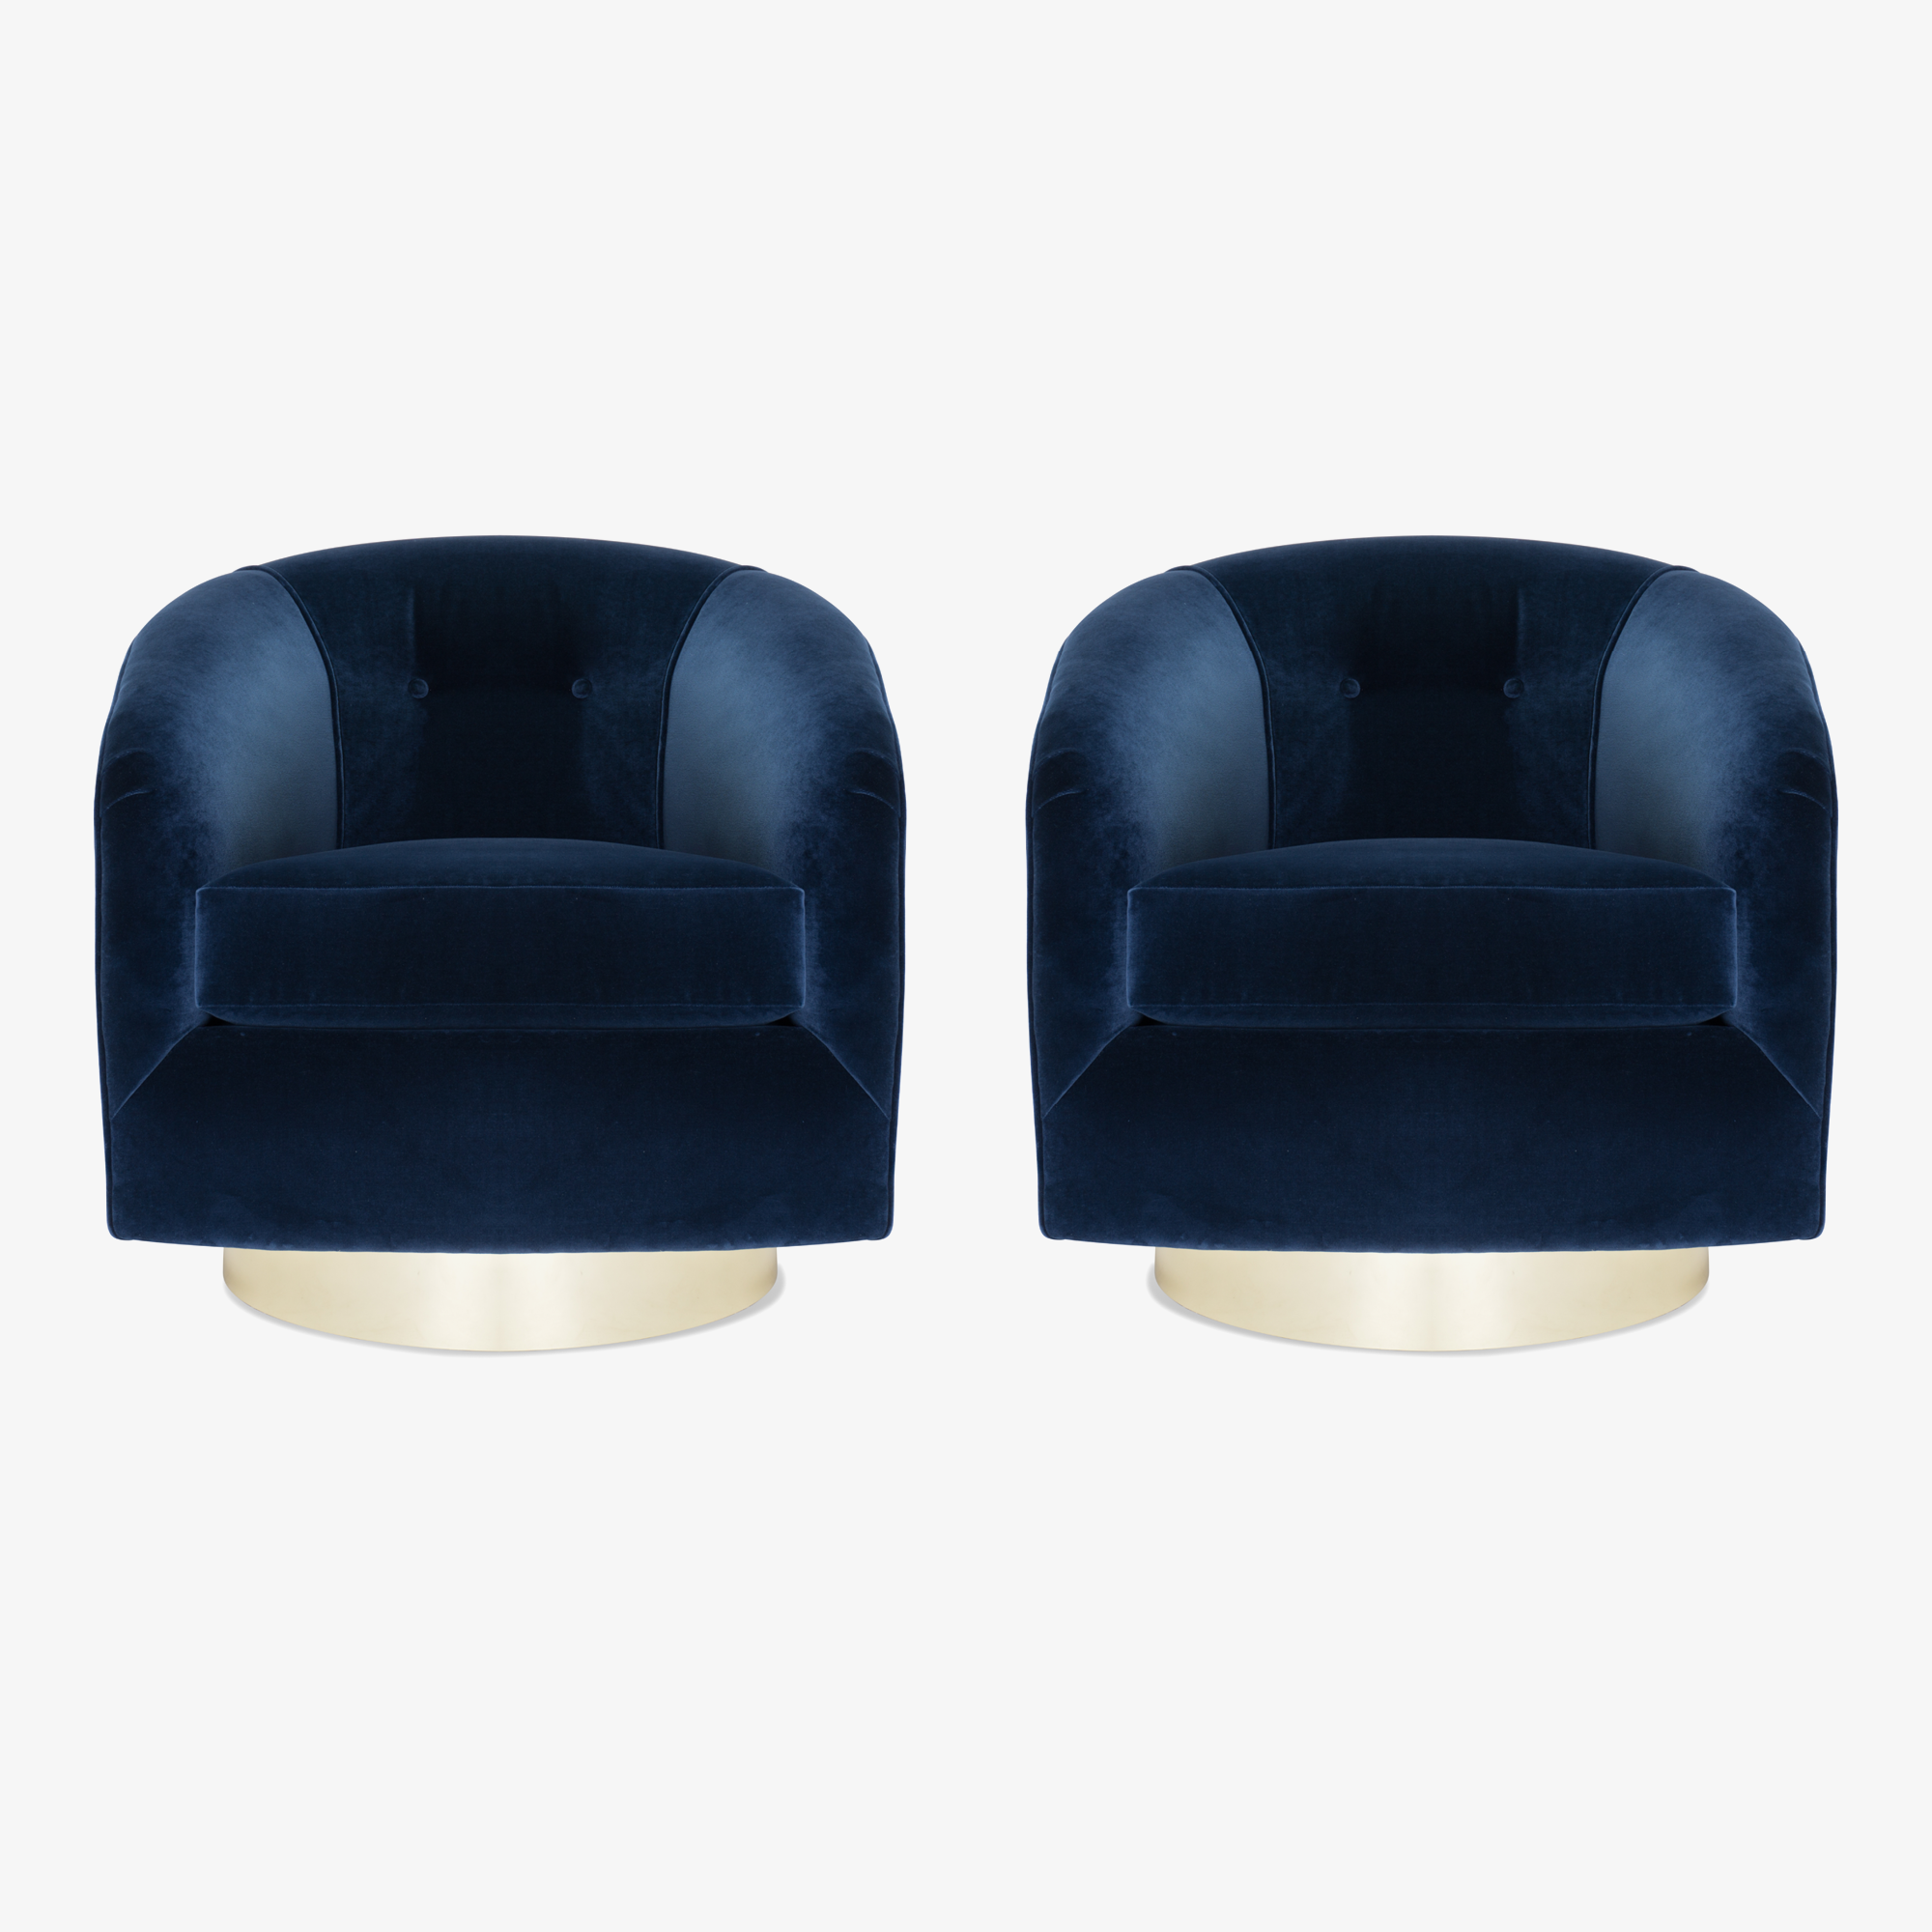 Swivel Tub Chairs in Navy Velvet with Polished Brass Bases, Pair.png